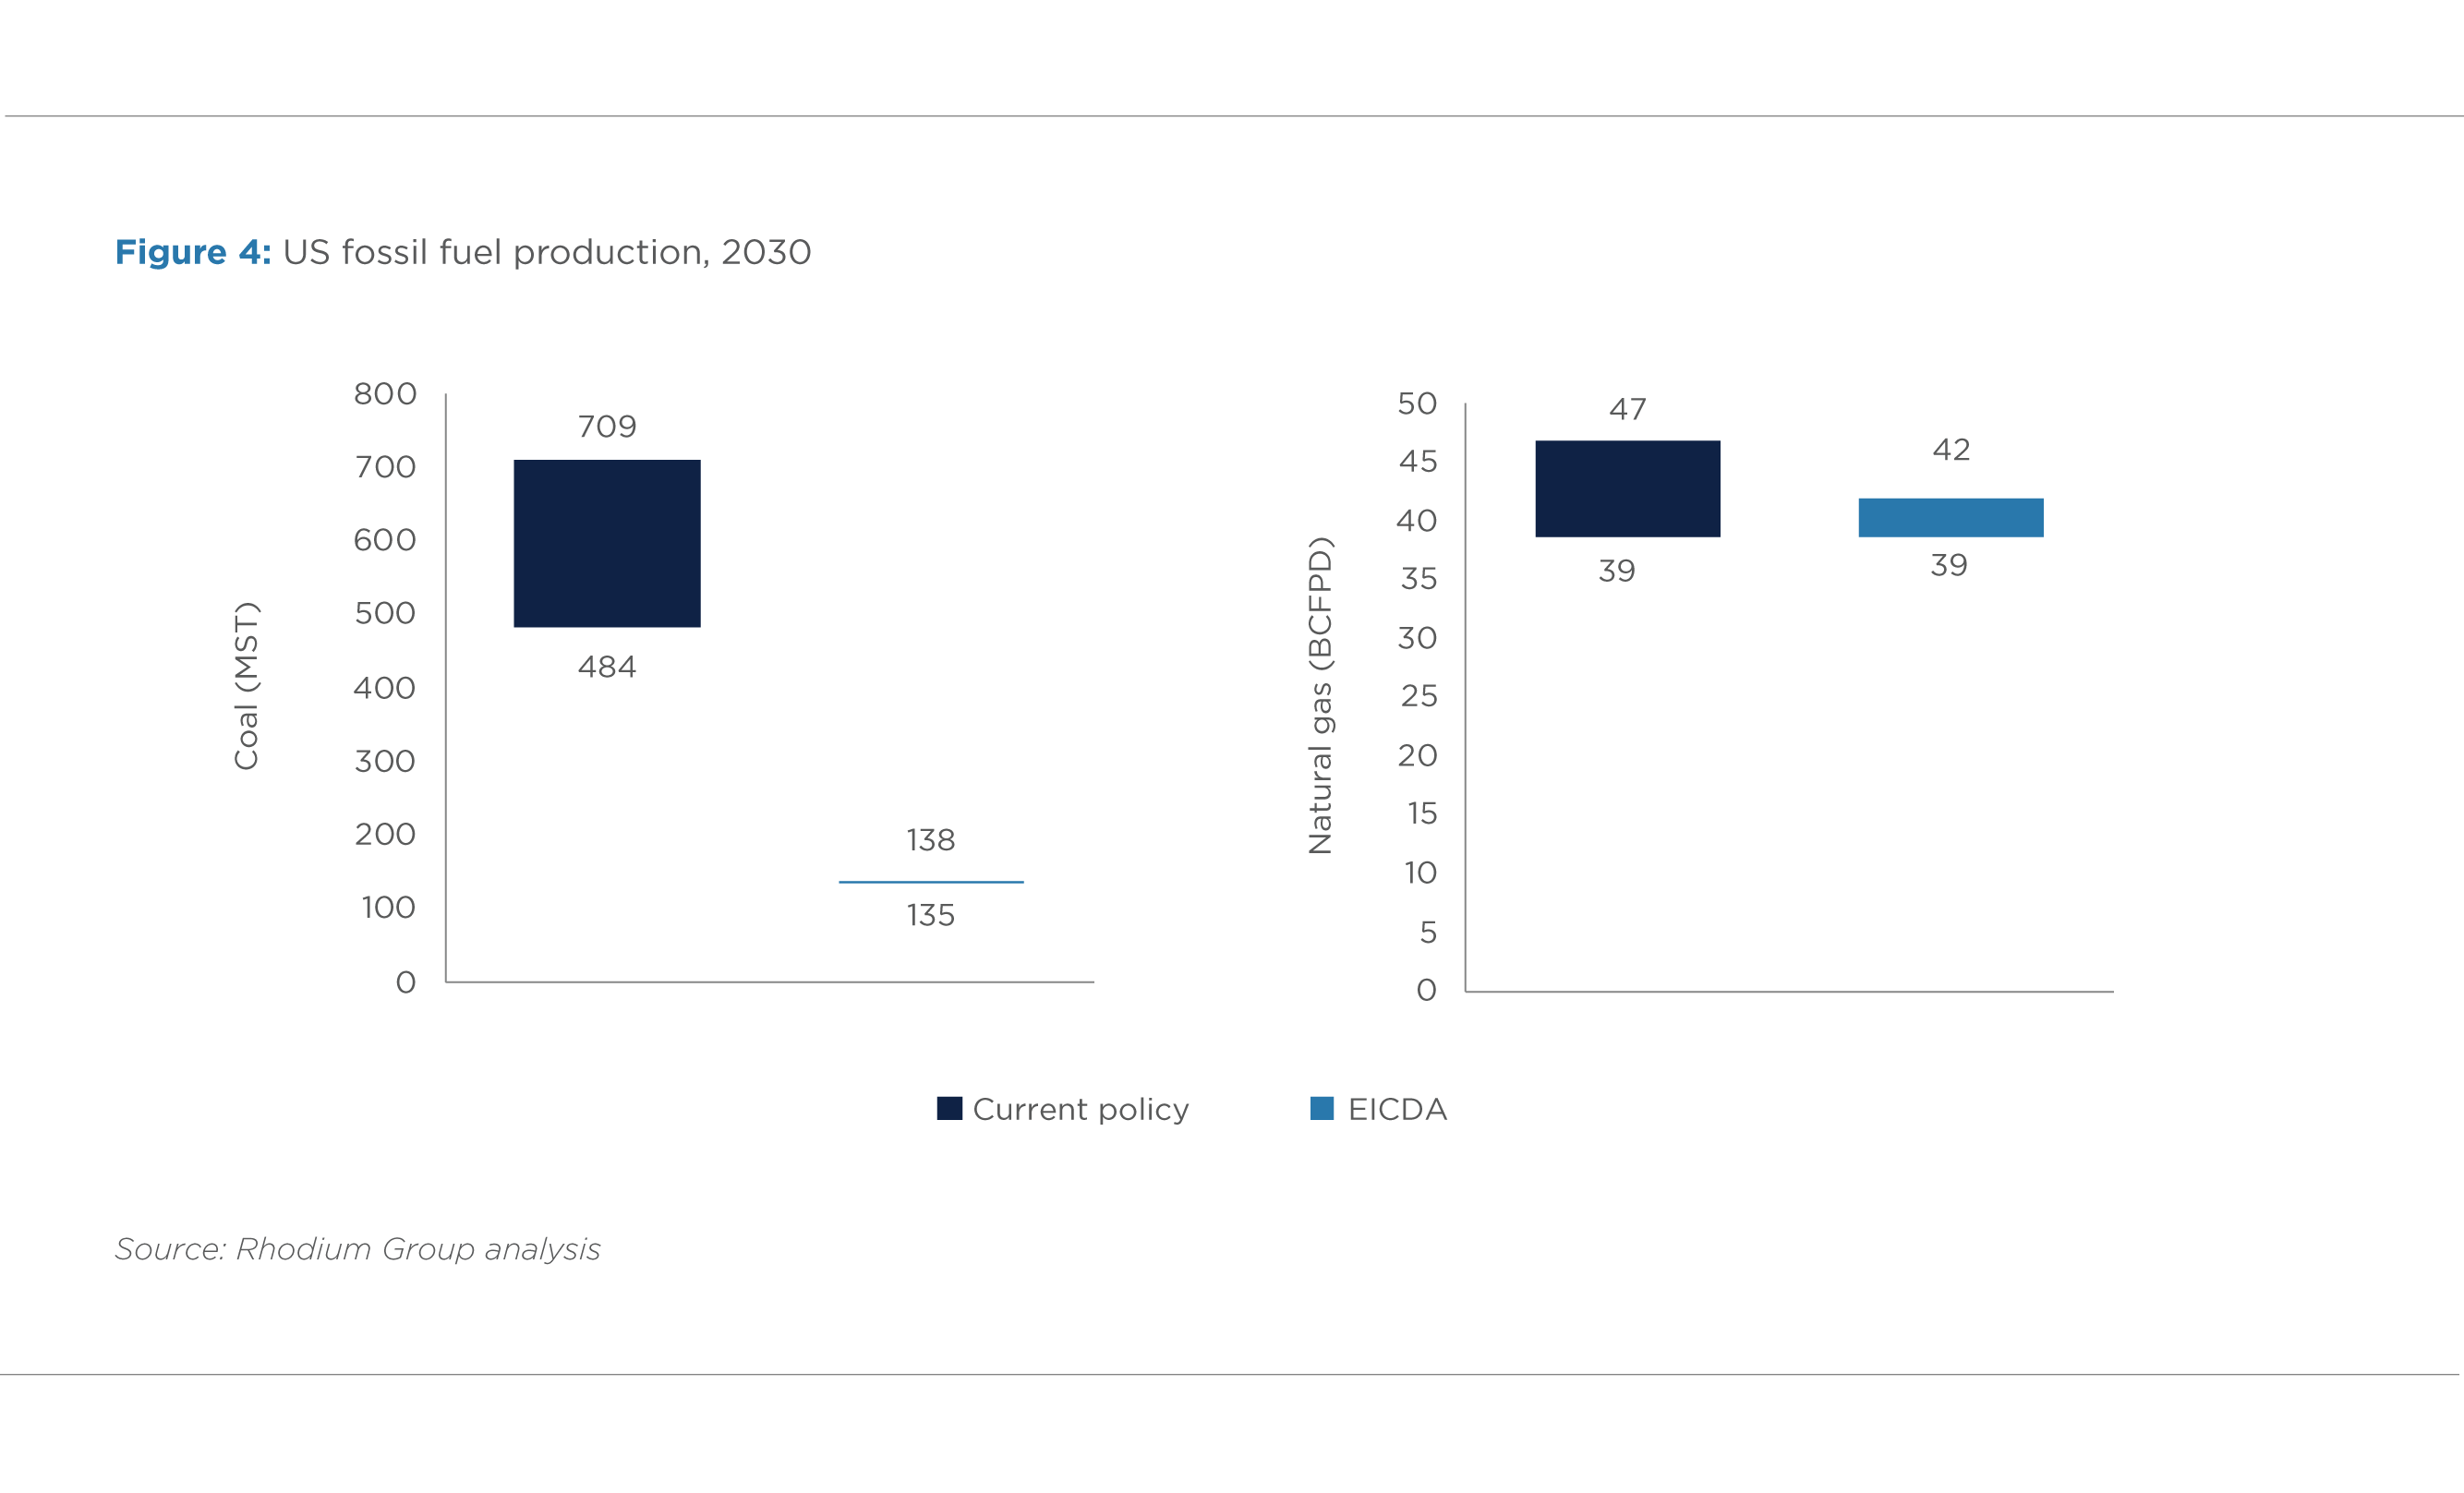 FIGURE 4. US FOSSIL FUEL PRODUCTION, 2030